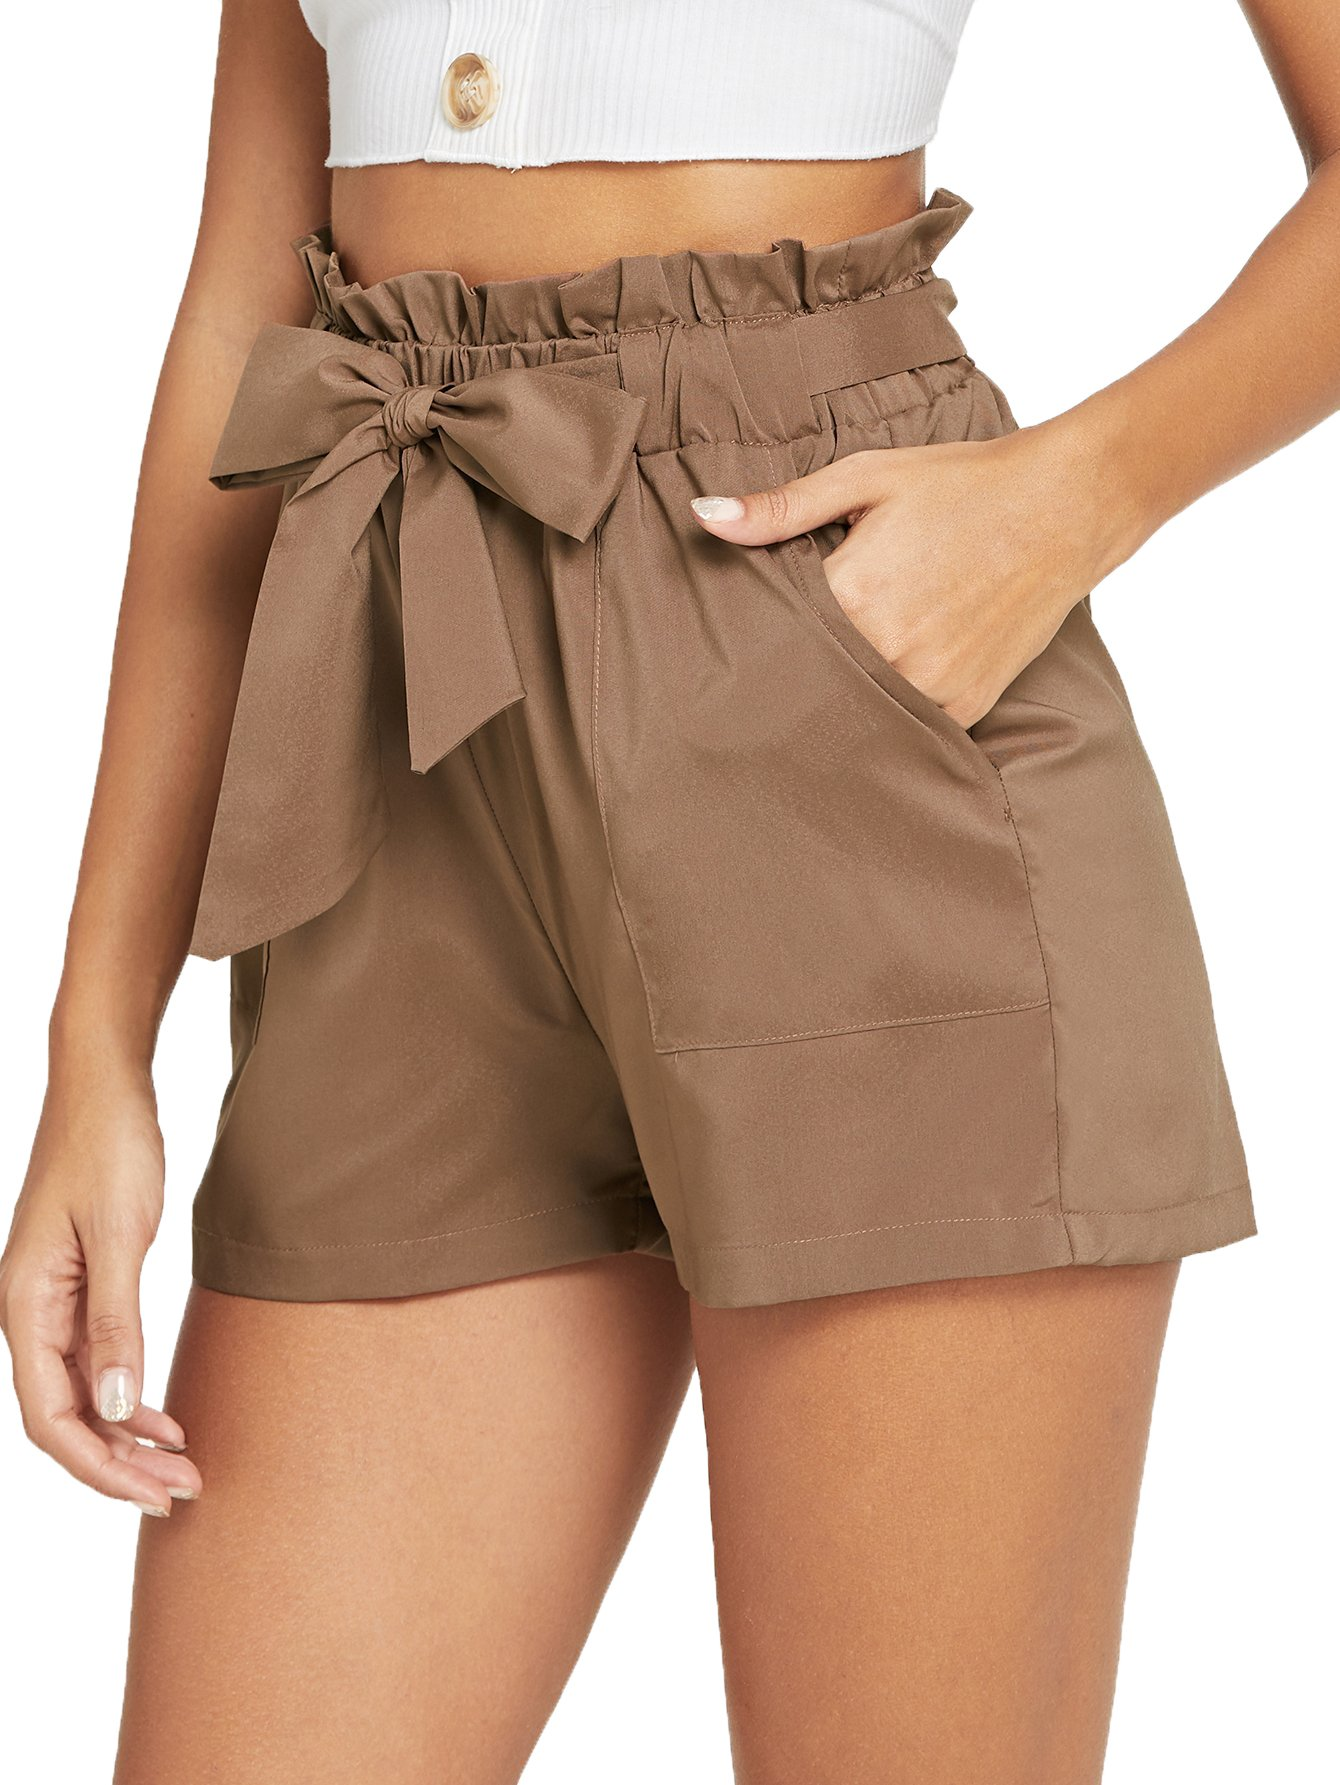 Romwe Women's Casual Elastic Waist Bowknot Summer Shorts with Pockets Brown M